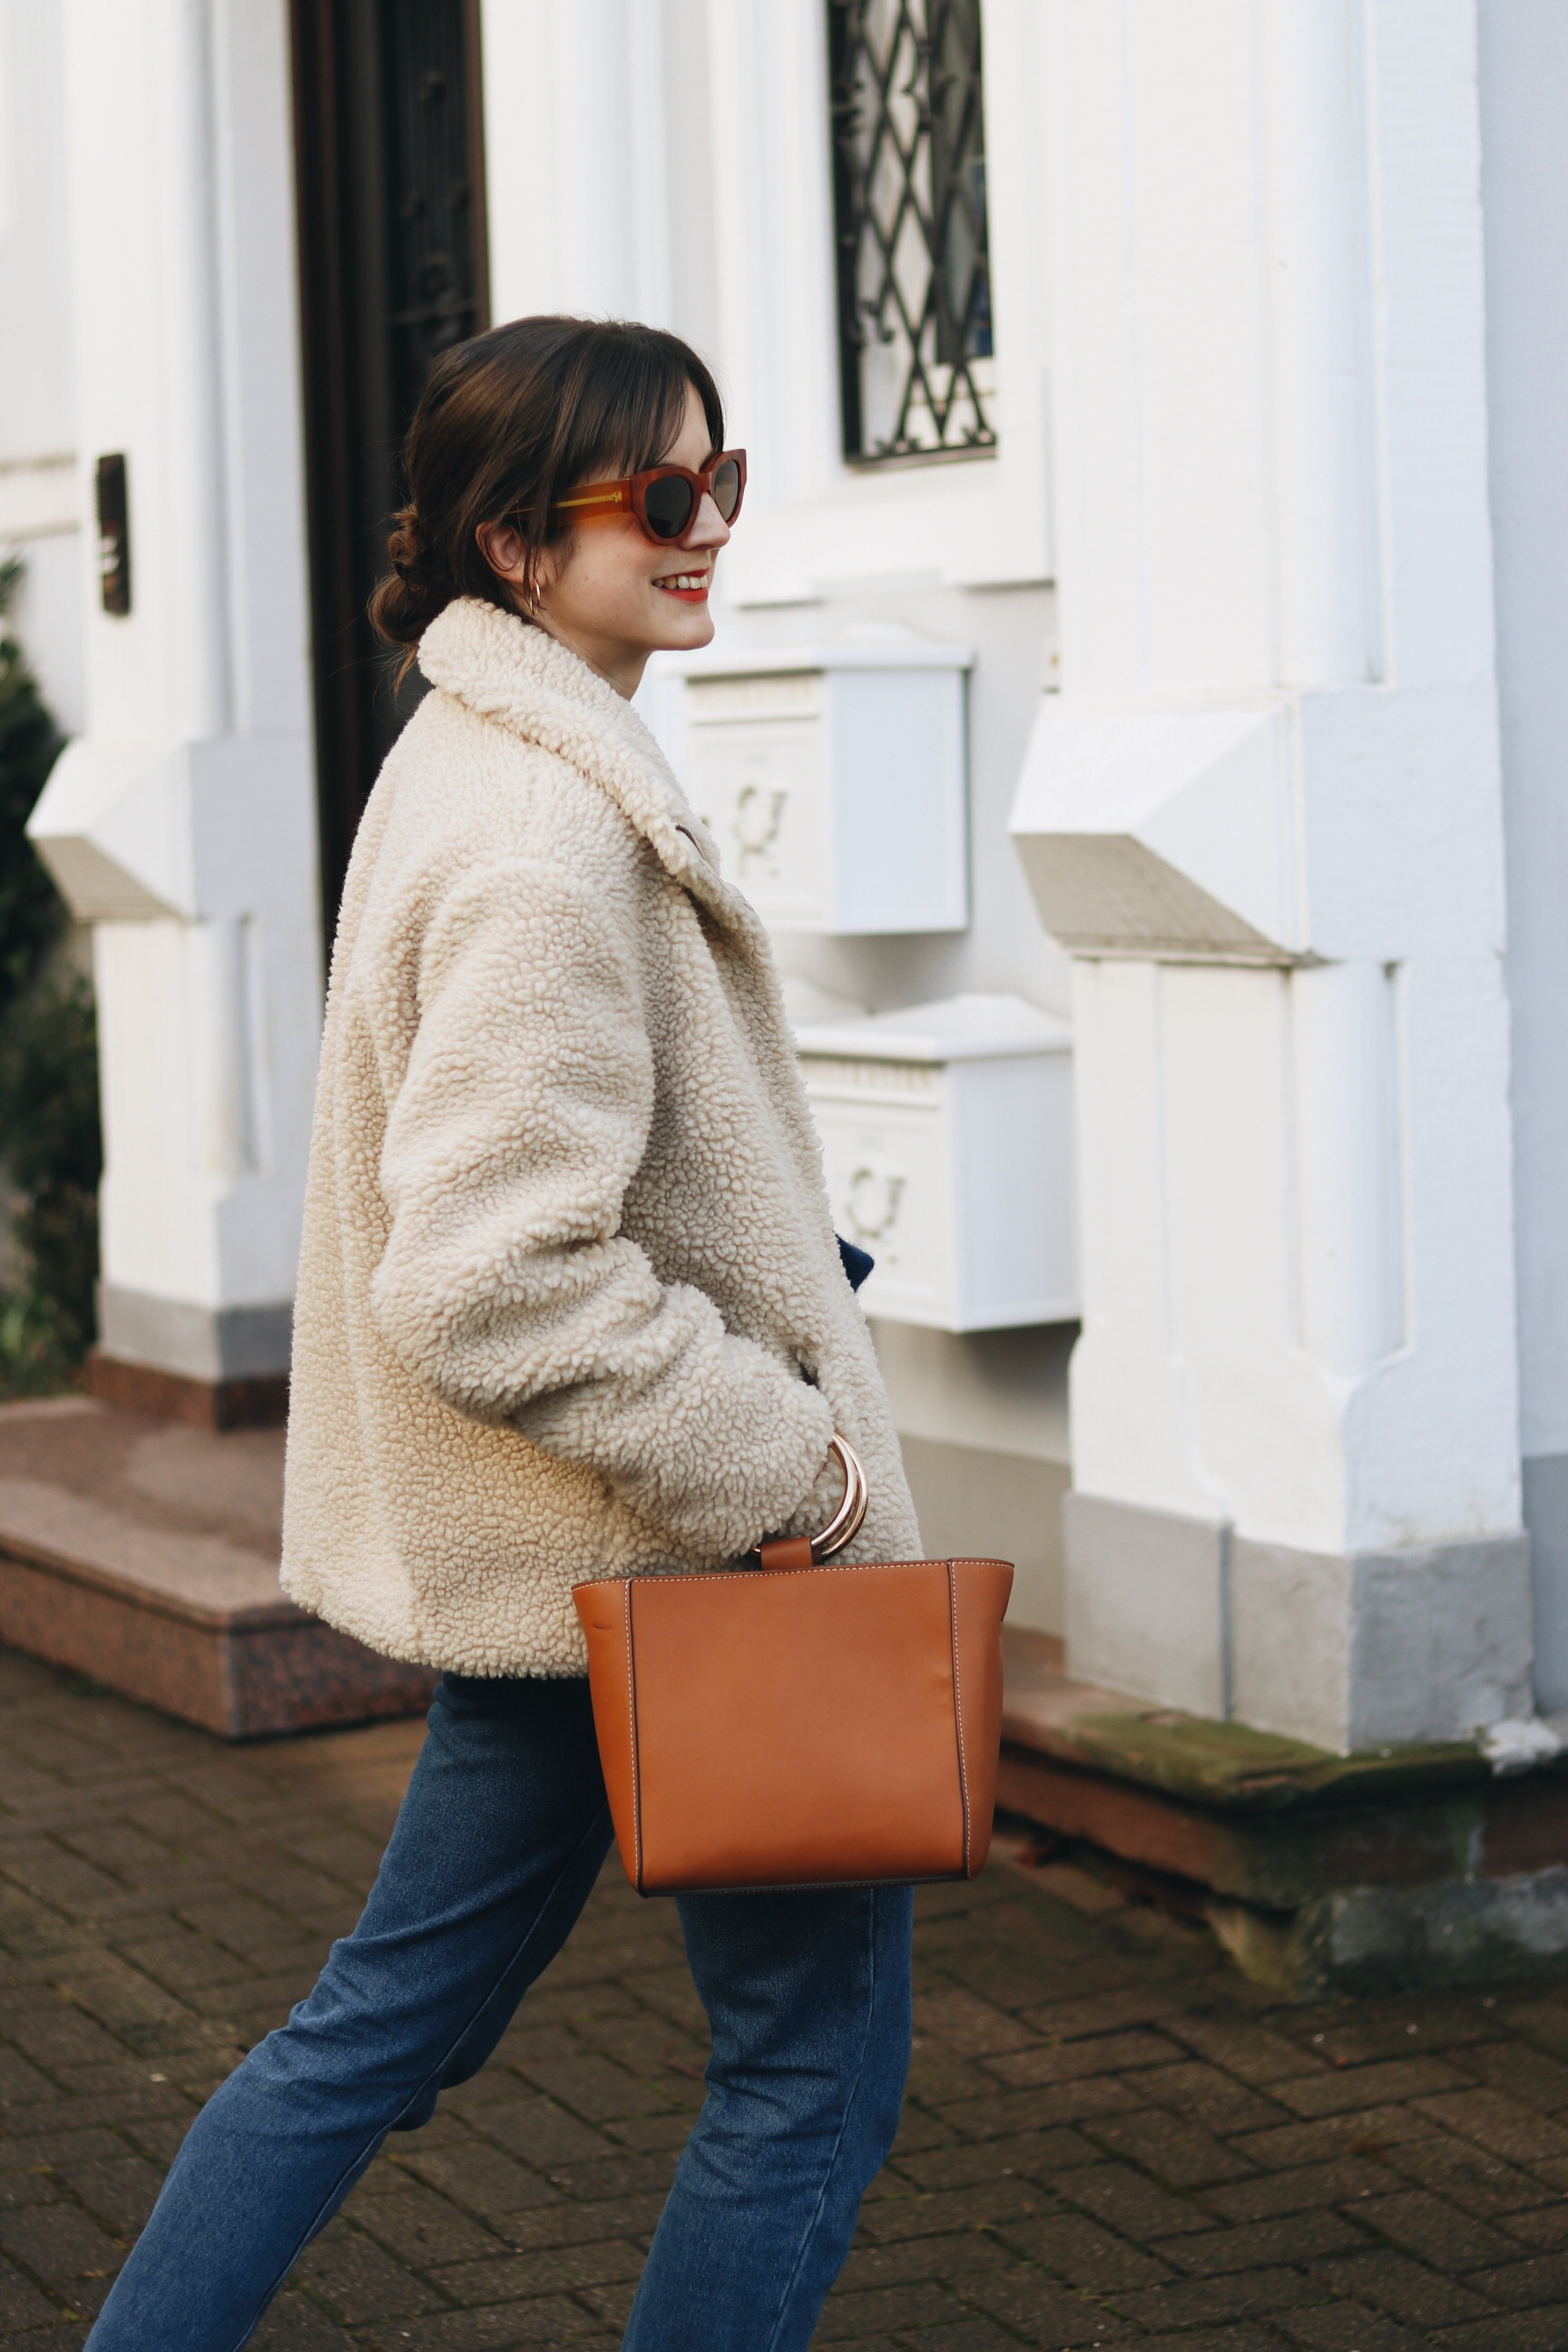 Fake Fur Jacke Ring Bag Modetrends Modeblog Outfit